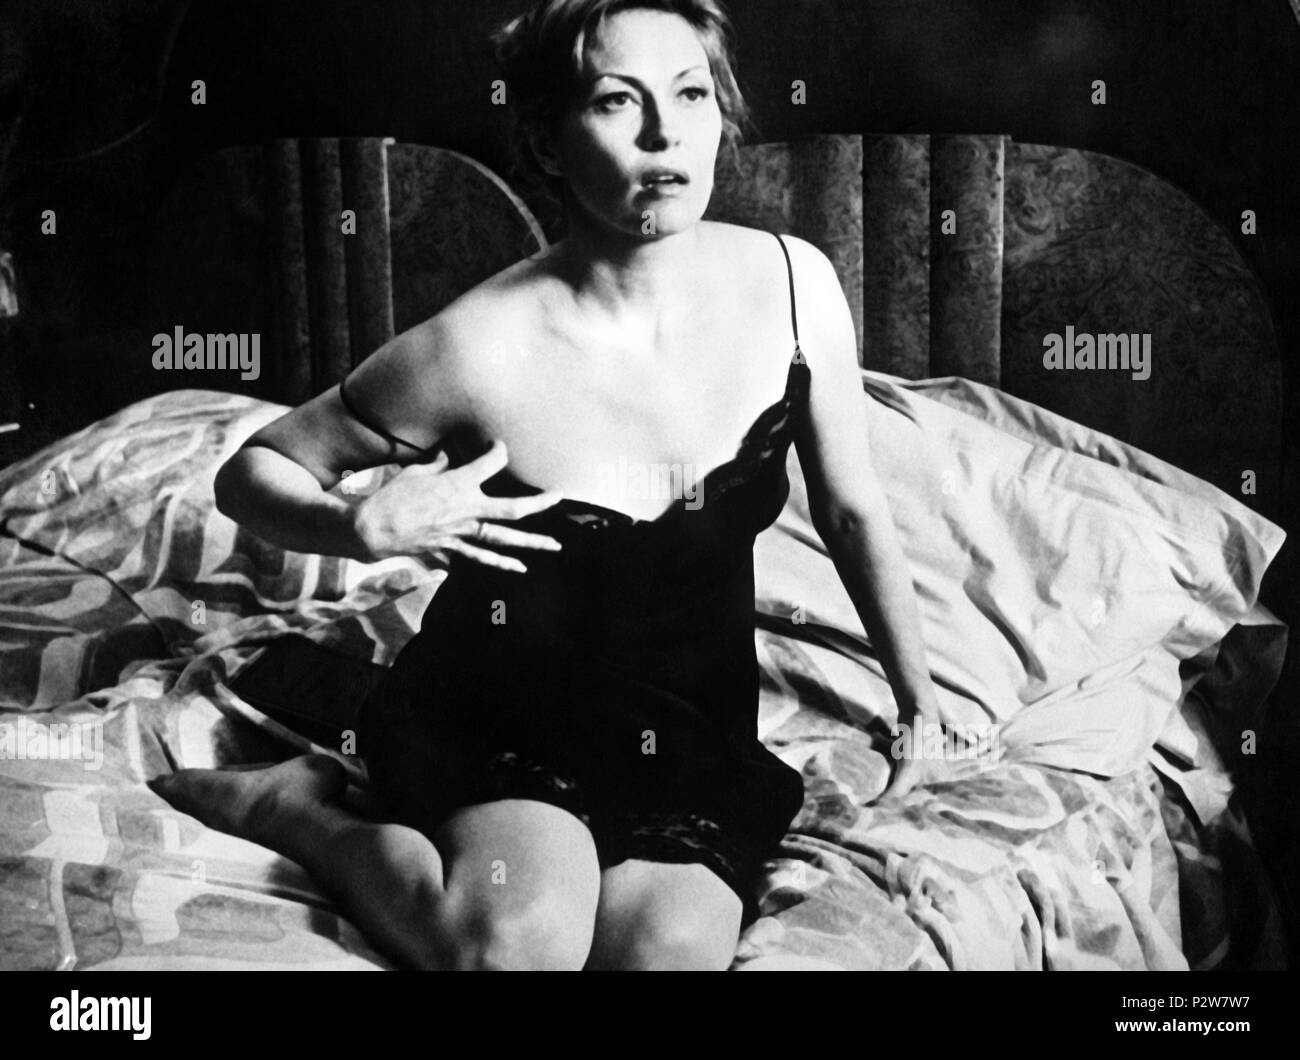 Original Film Title: VOYAGE OF THE DAMNED.  English Title: VOYAGE OF THE DAMNED.  Film Director: STUART ROSENBERG.  Year: 1976.  Stars: FAYE DUNAWAY. Credit: ASSOCIATED GENERAL / Album - Stock Image